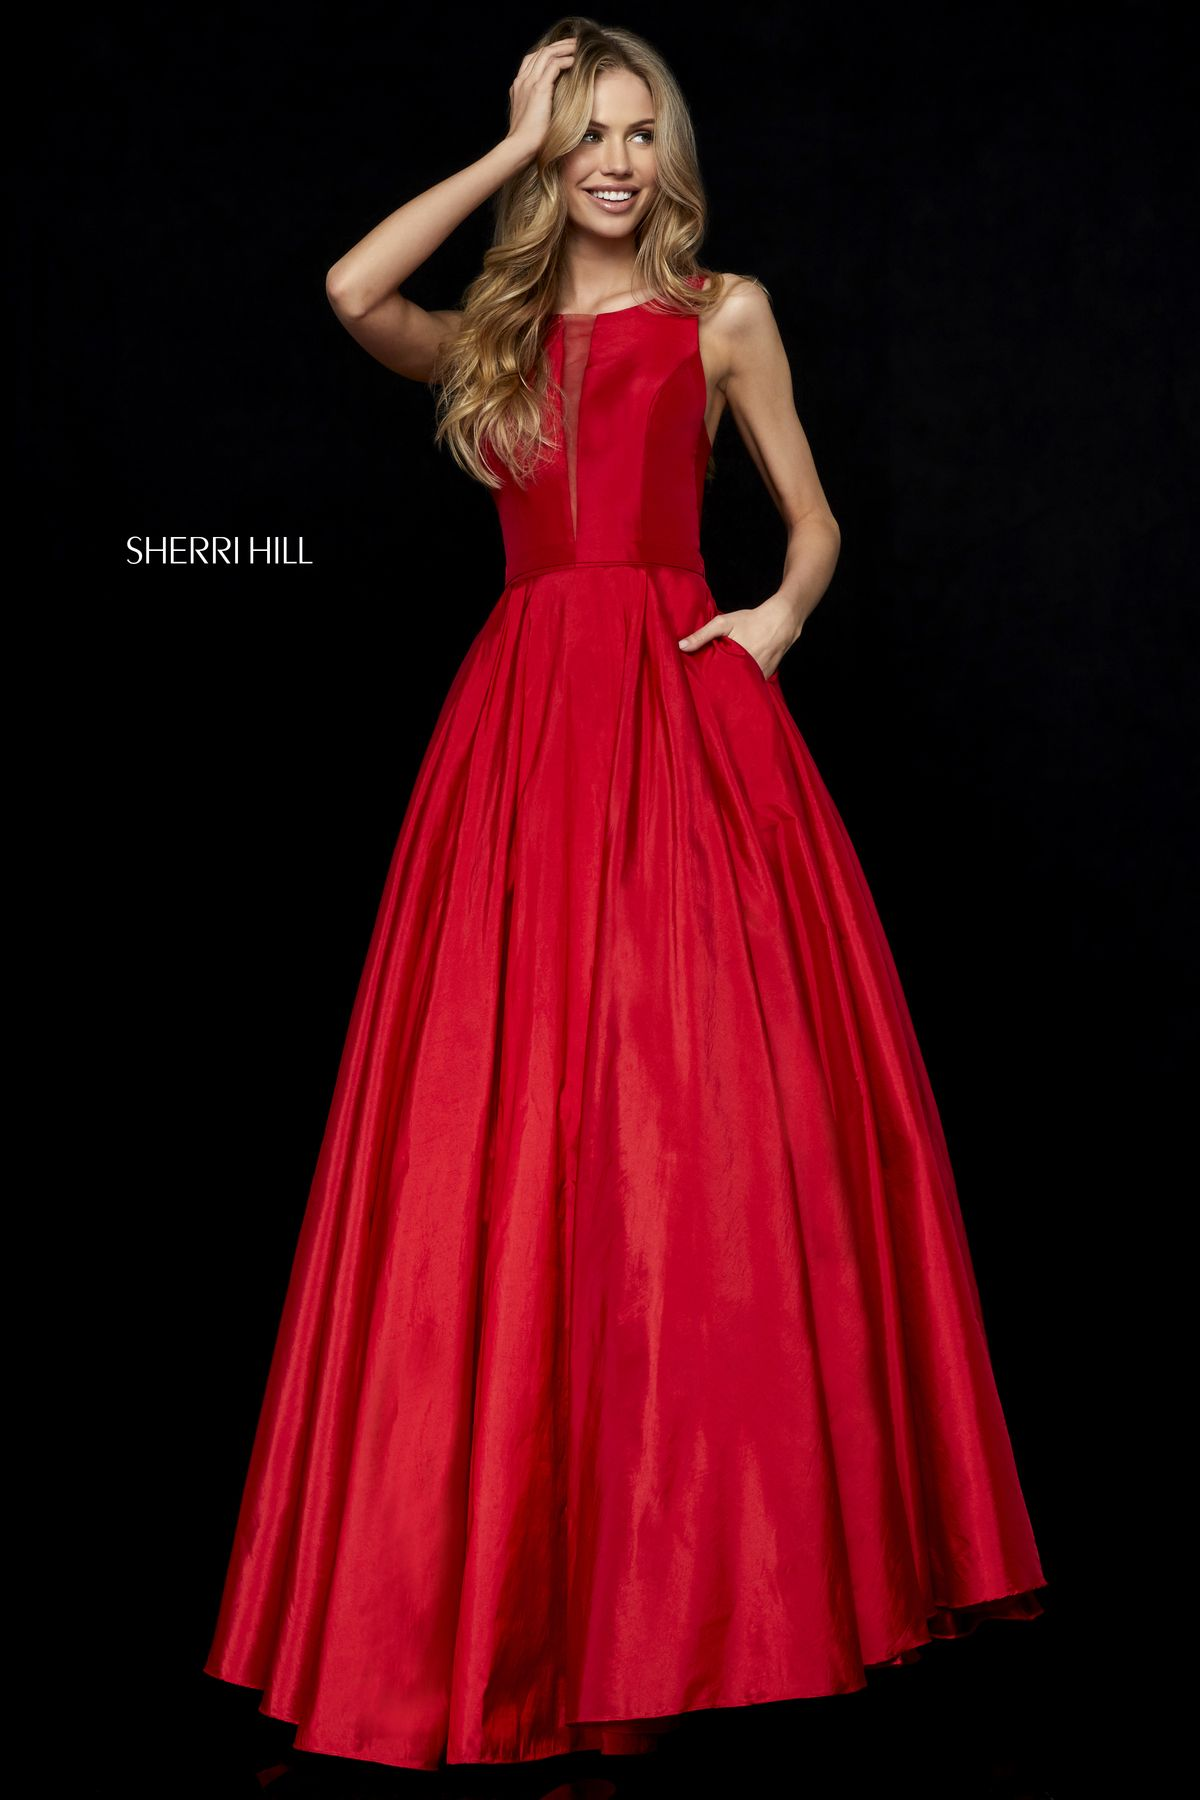 Style fall collection pinterest sherri hill